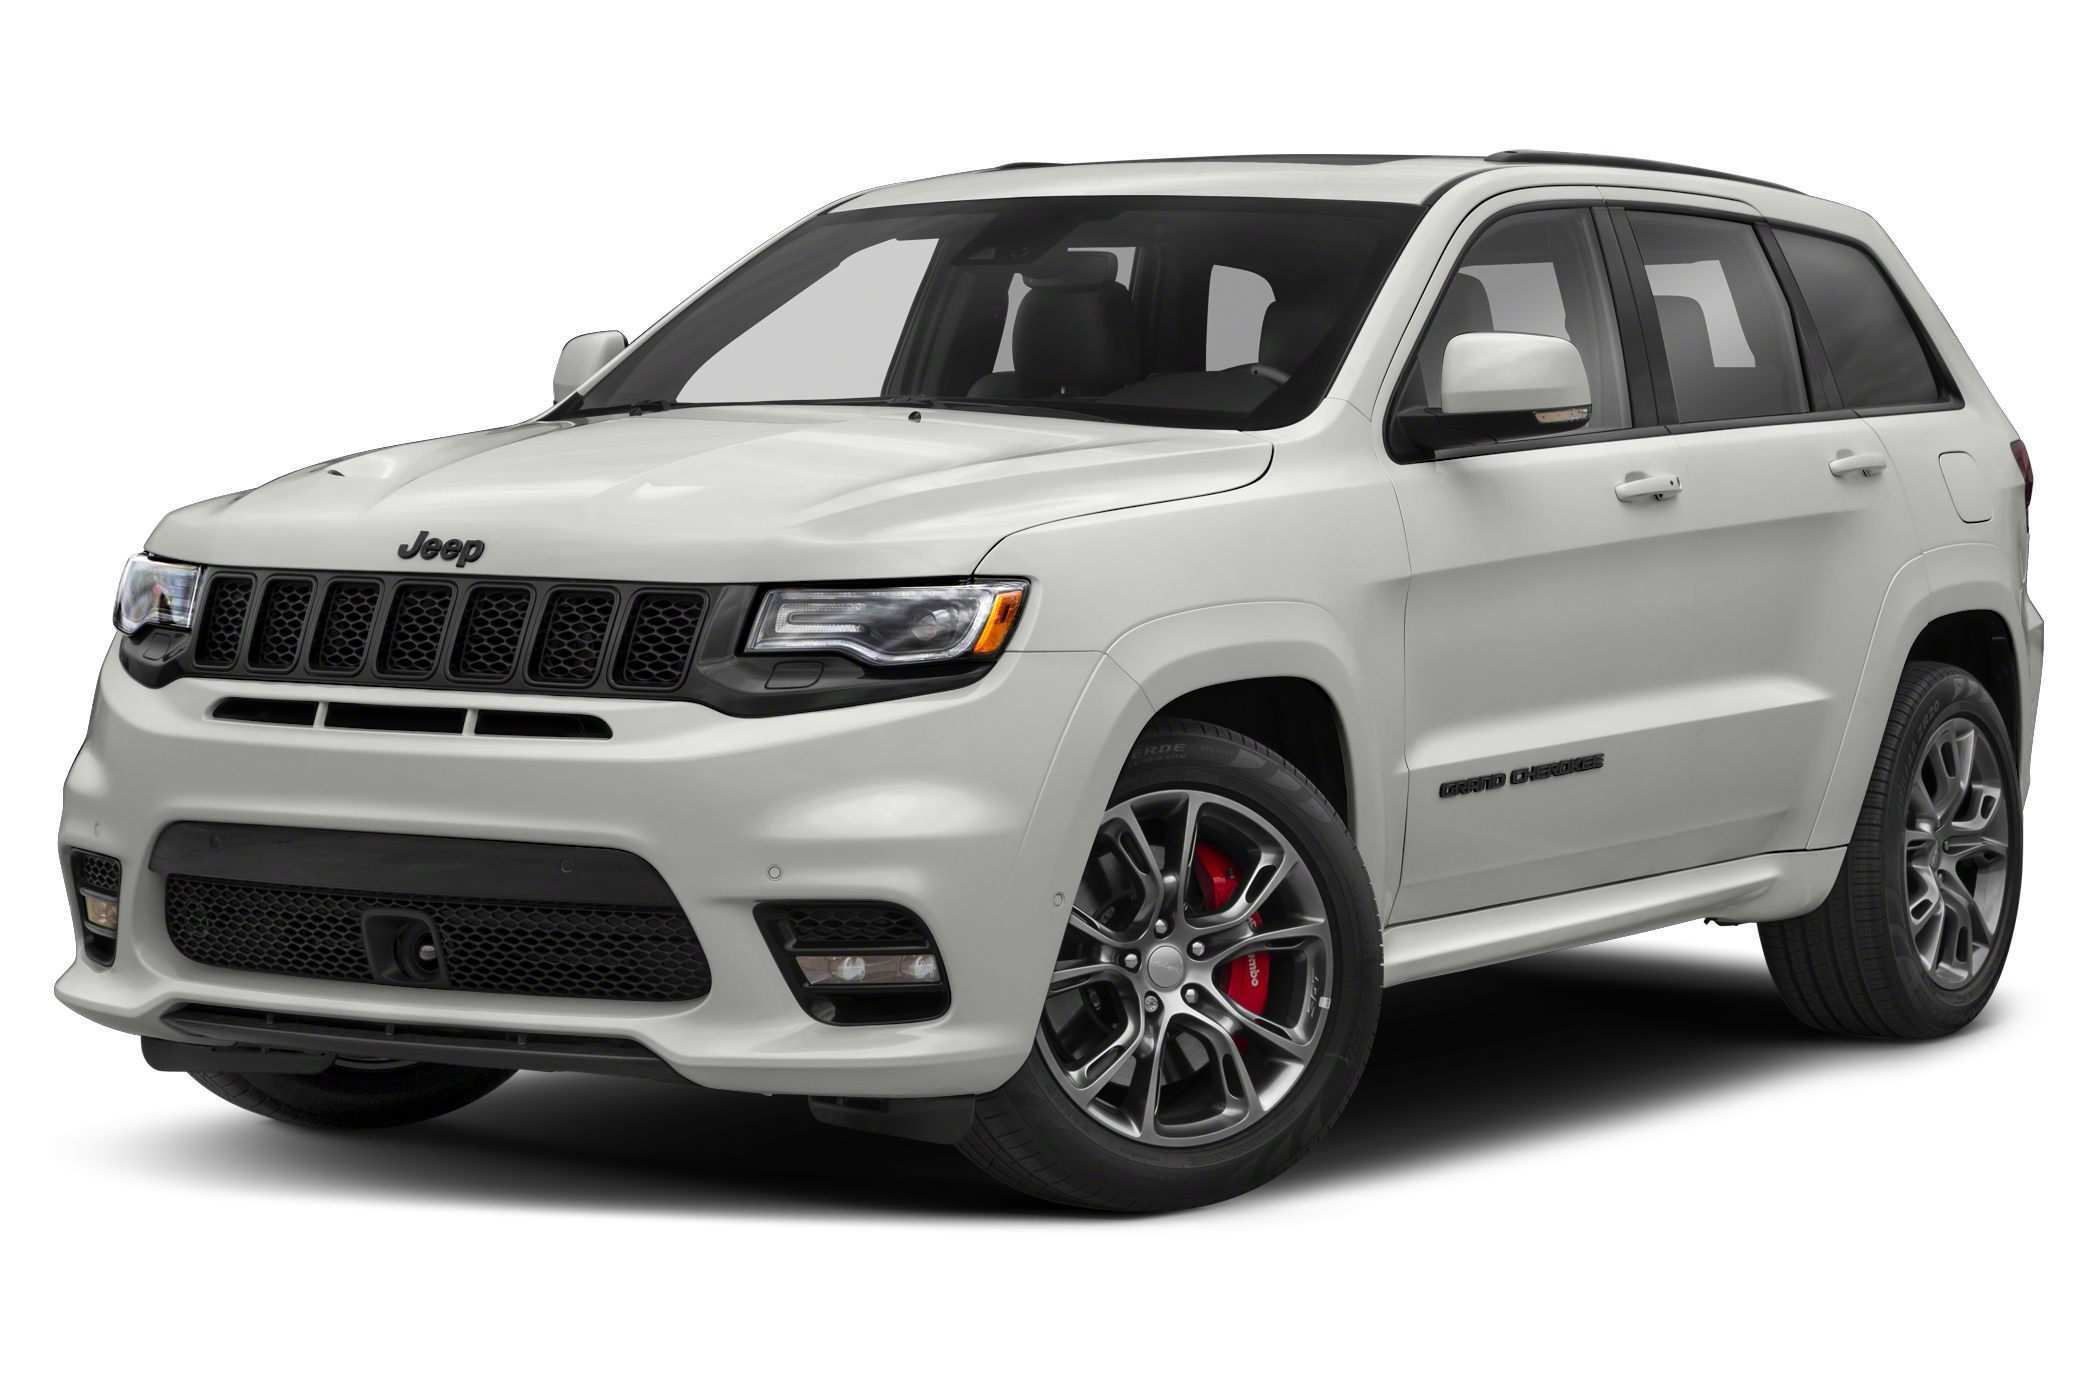 51 The Best 2019 Grand Cherokee Srt Concept And Review